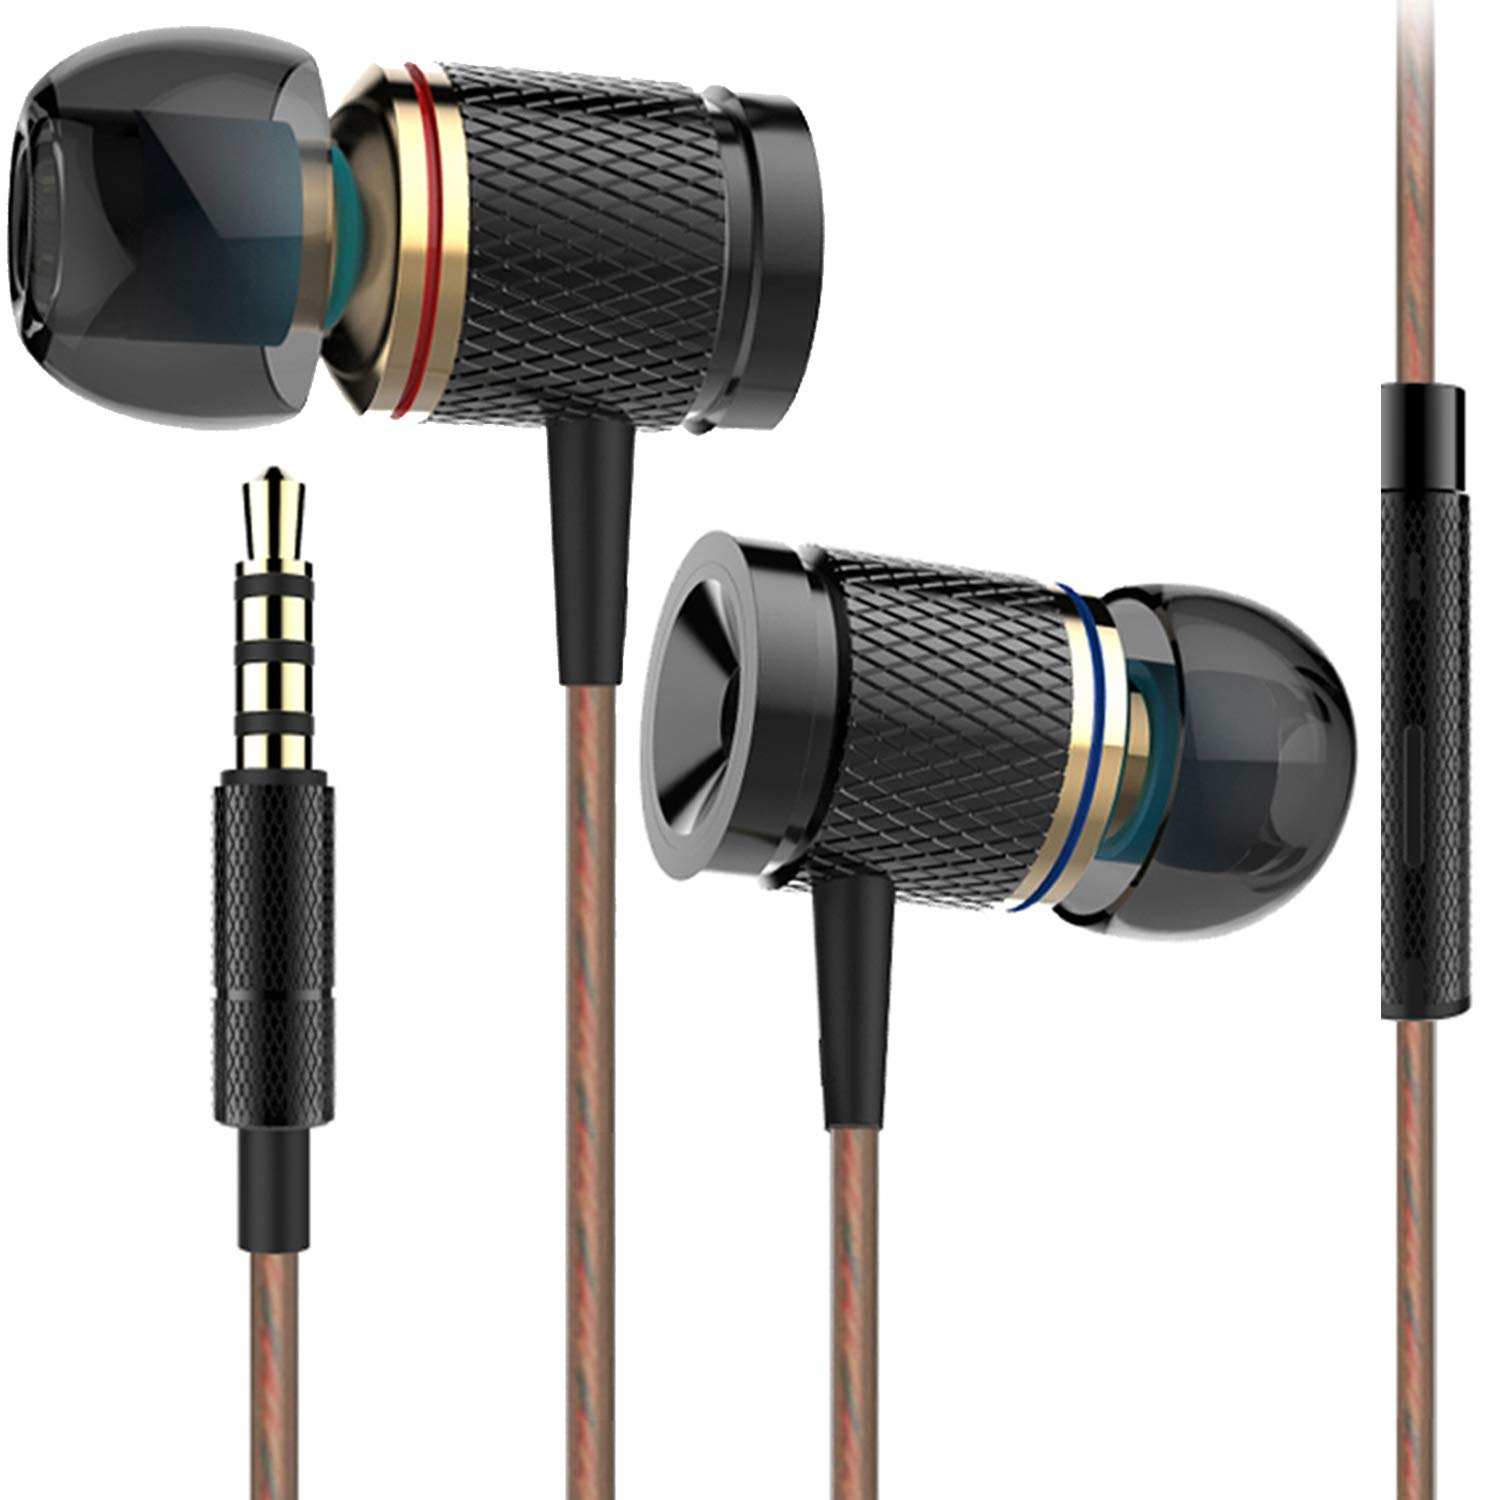 Earphones Headphones Ofuca X53 Noise Isolating in-Ear Earbuds with Pure Sound and Rich Bass Compatible with Smartphone, MP3/MP4 Player Tablet and All 3.5mm Audio Device (with Microphone) by Ofuca